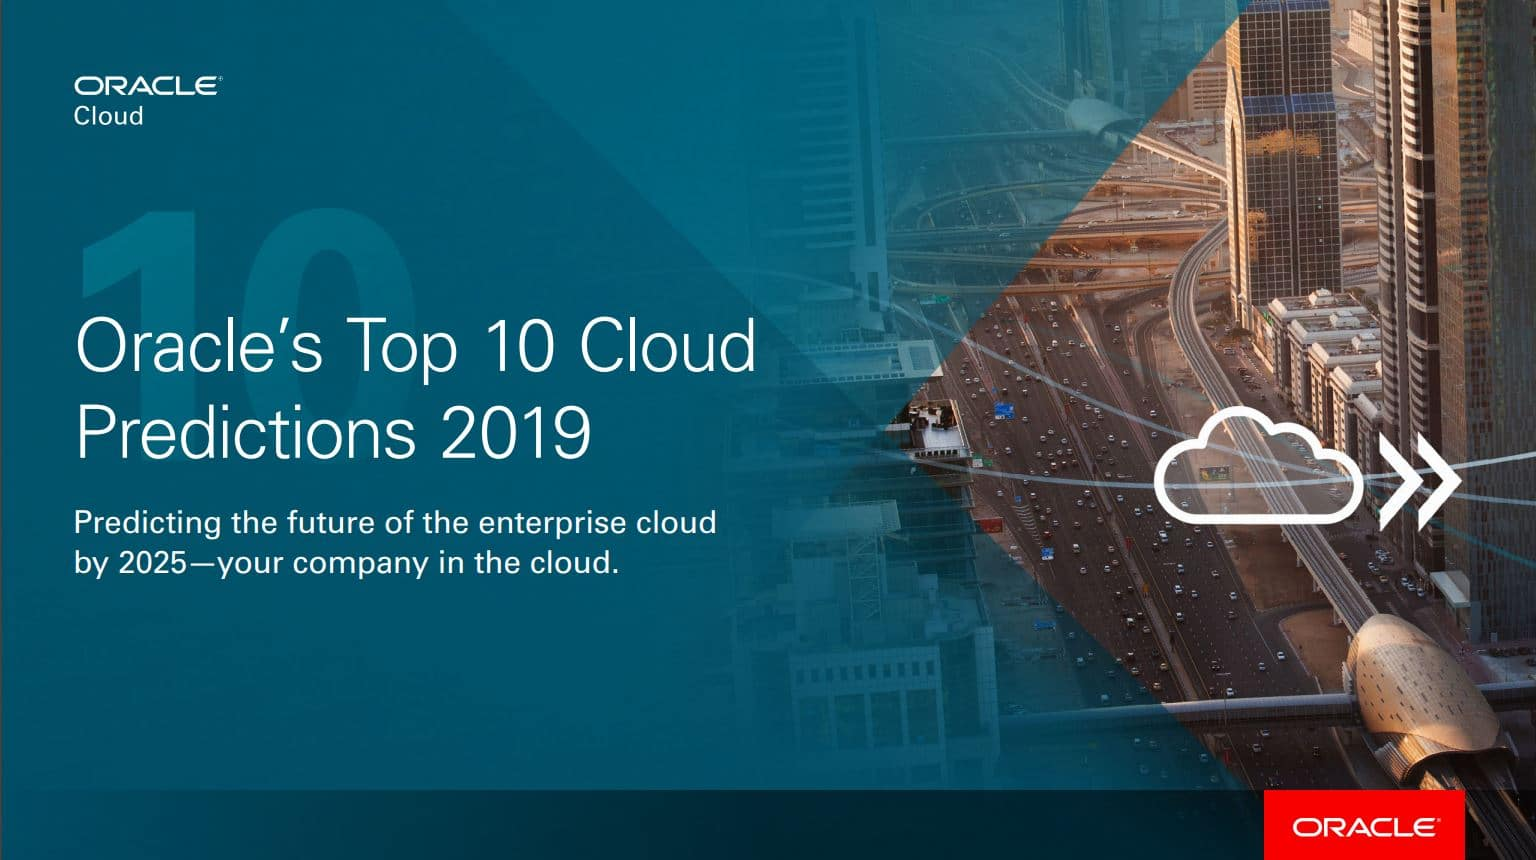 An image that says Oracle's Top 10 Cloud Predictions 2019. Predicting the future of the enterprise cloud by 2025 - your company in the cloud